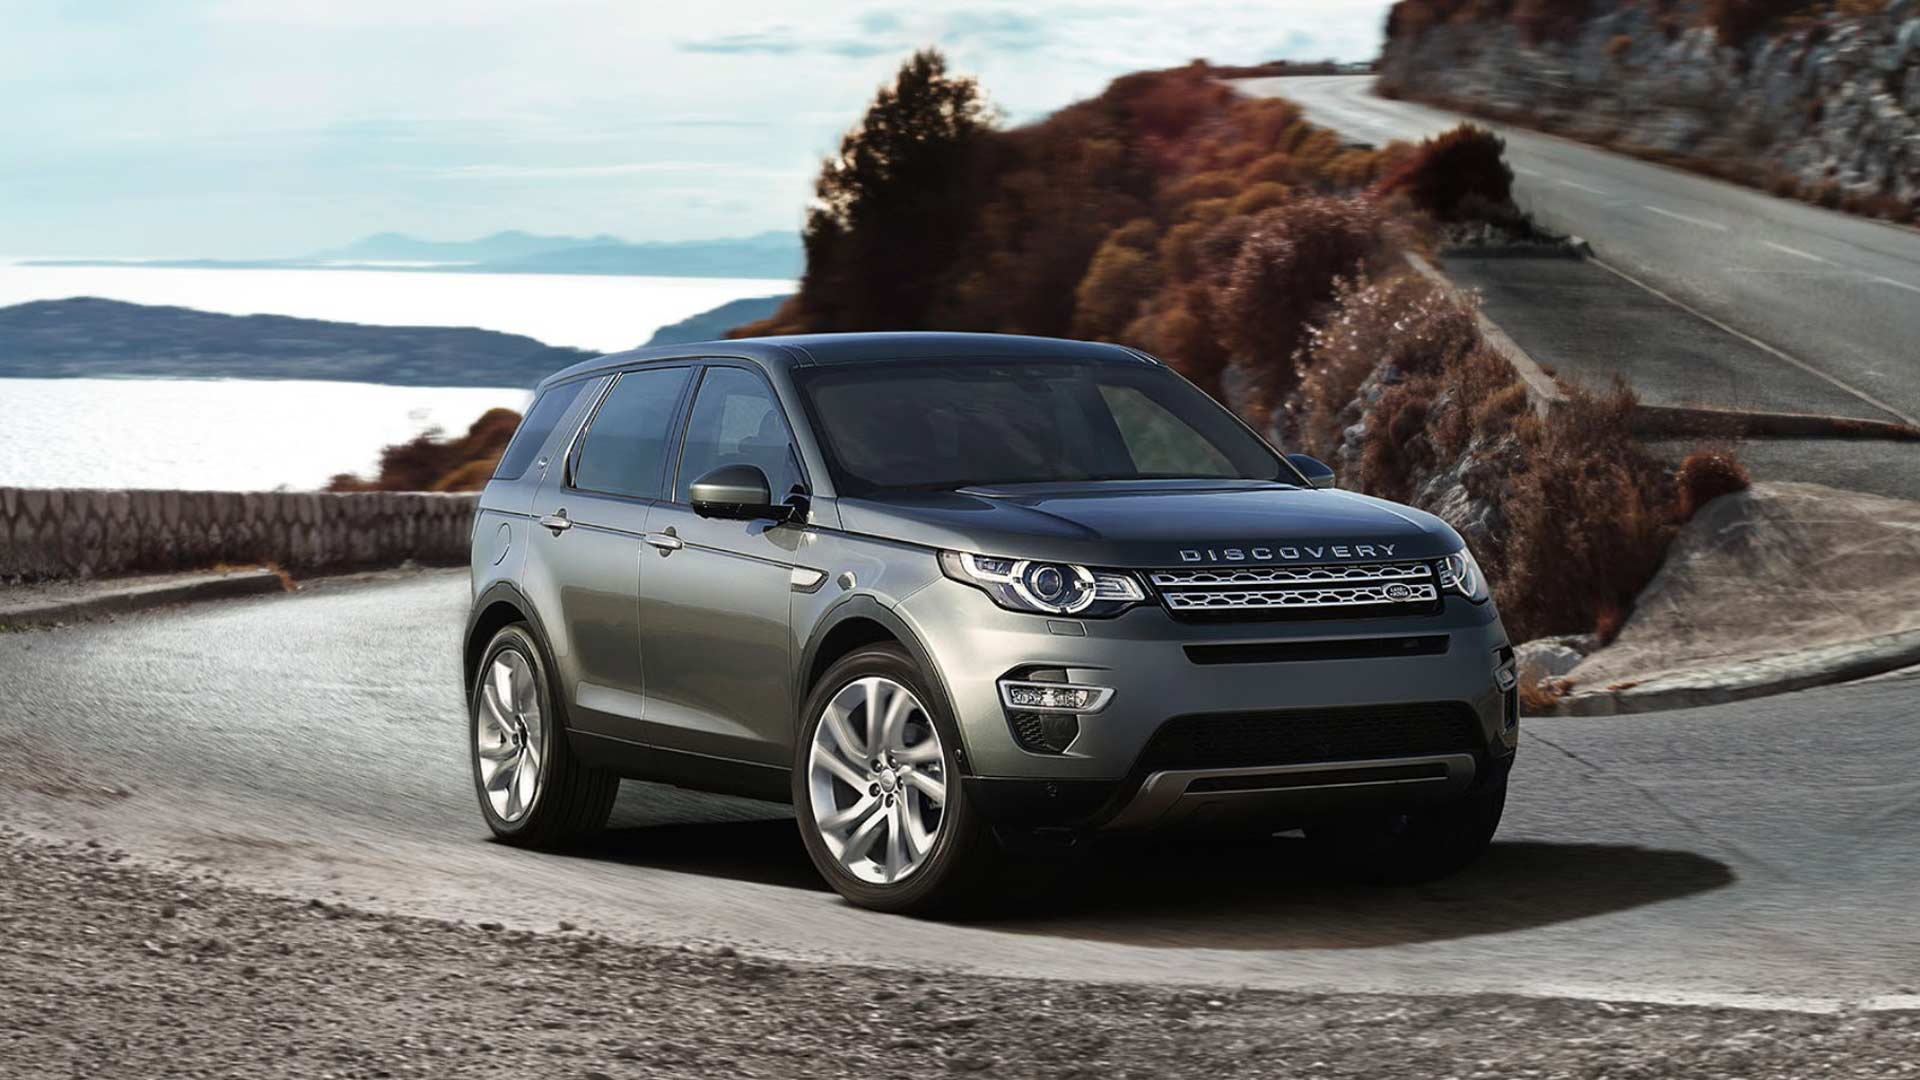 Land Rover Incontrol Apps >> Discovery Sport gets Wi-Fi Hotspot & Pro Services in India - Autodevot